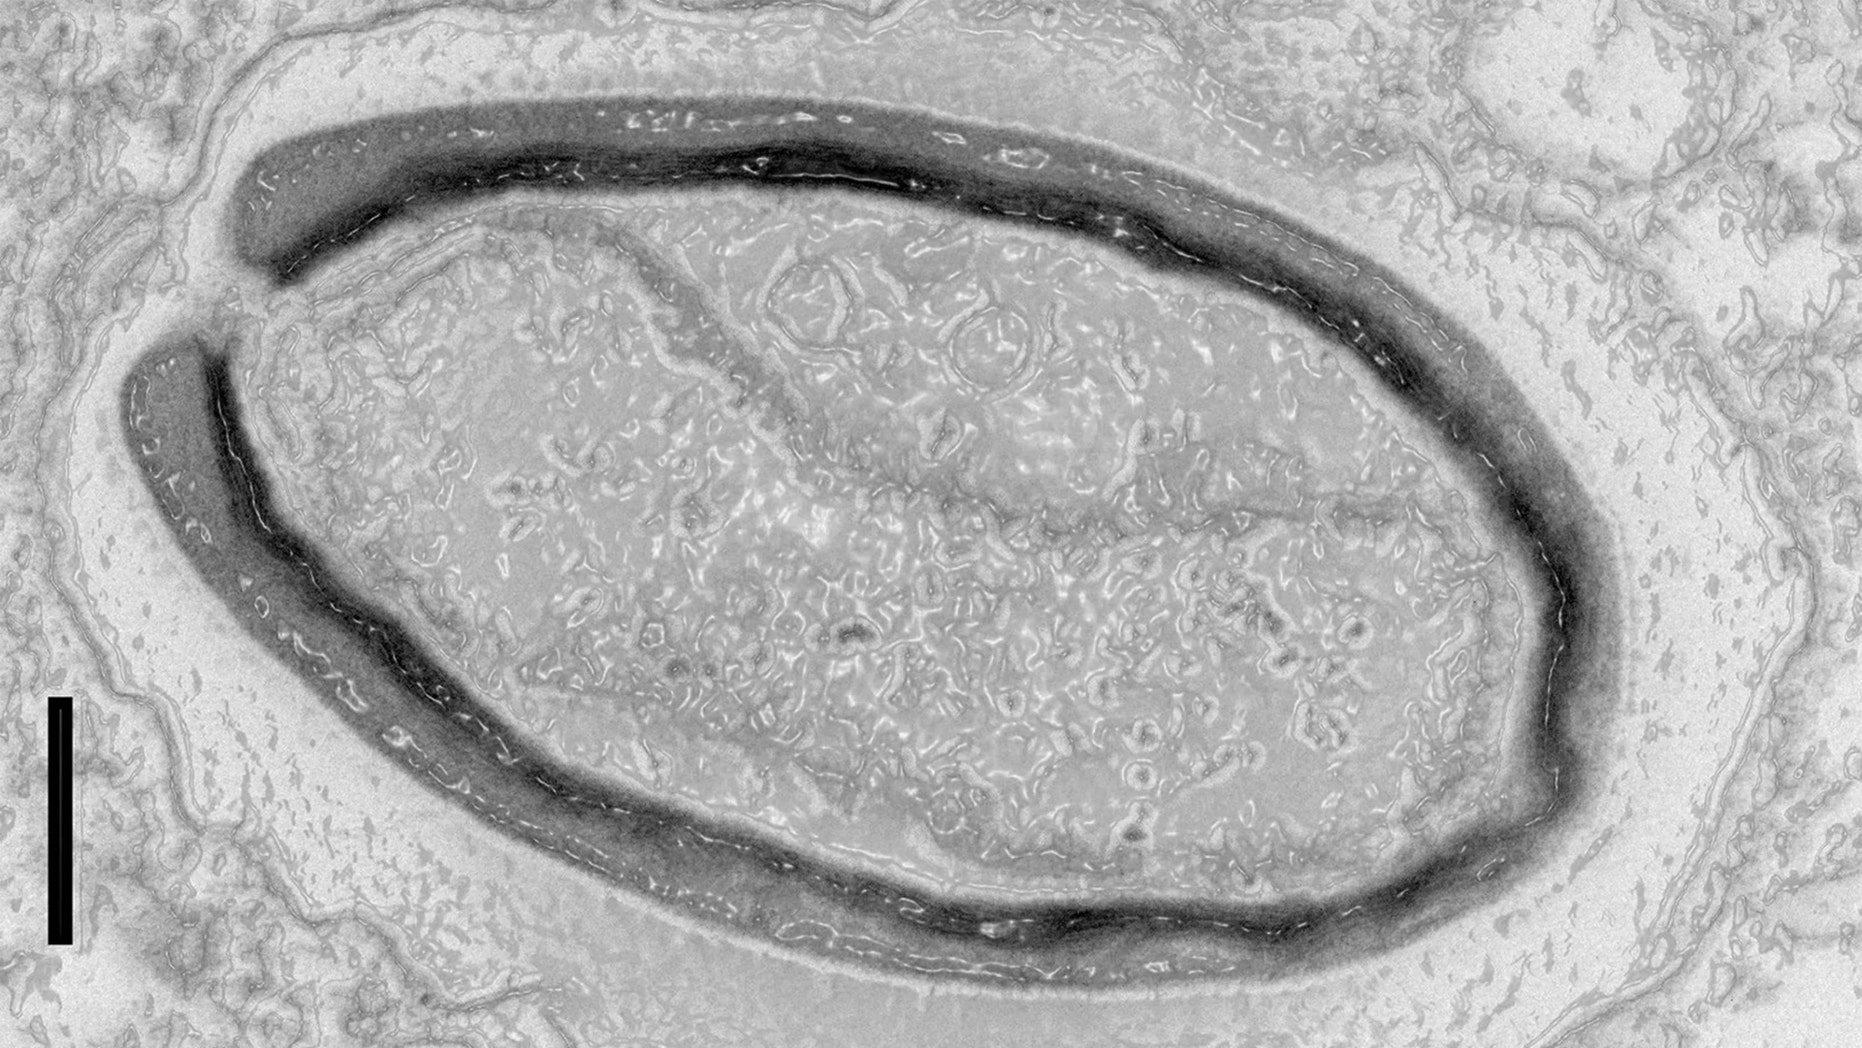 Pandoravirus quercus, as viewed through an electron microscope. The scale bar equals 100 nanometers. Credit: Copyright IGS-CNRS/AMU